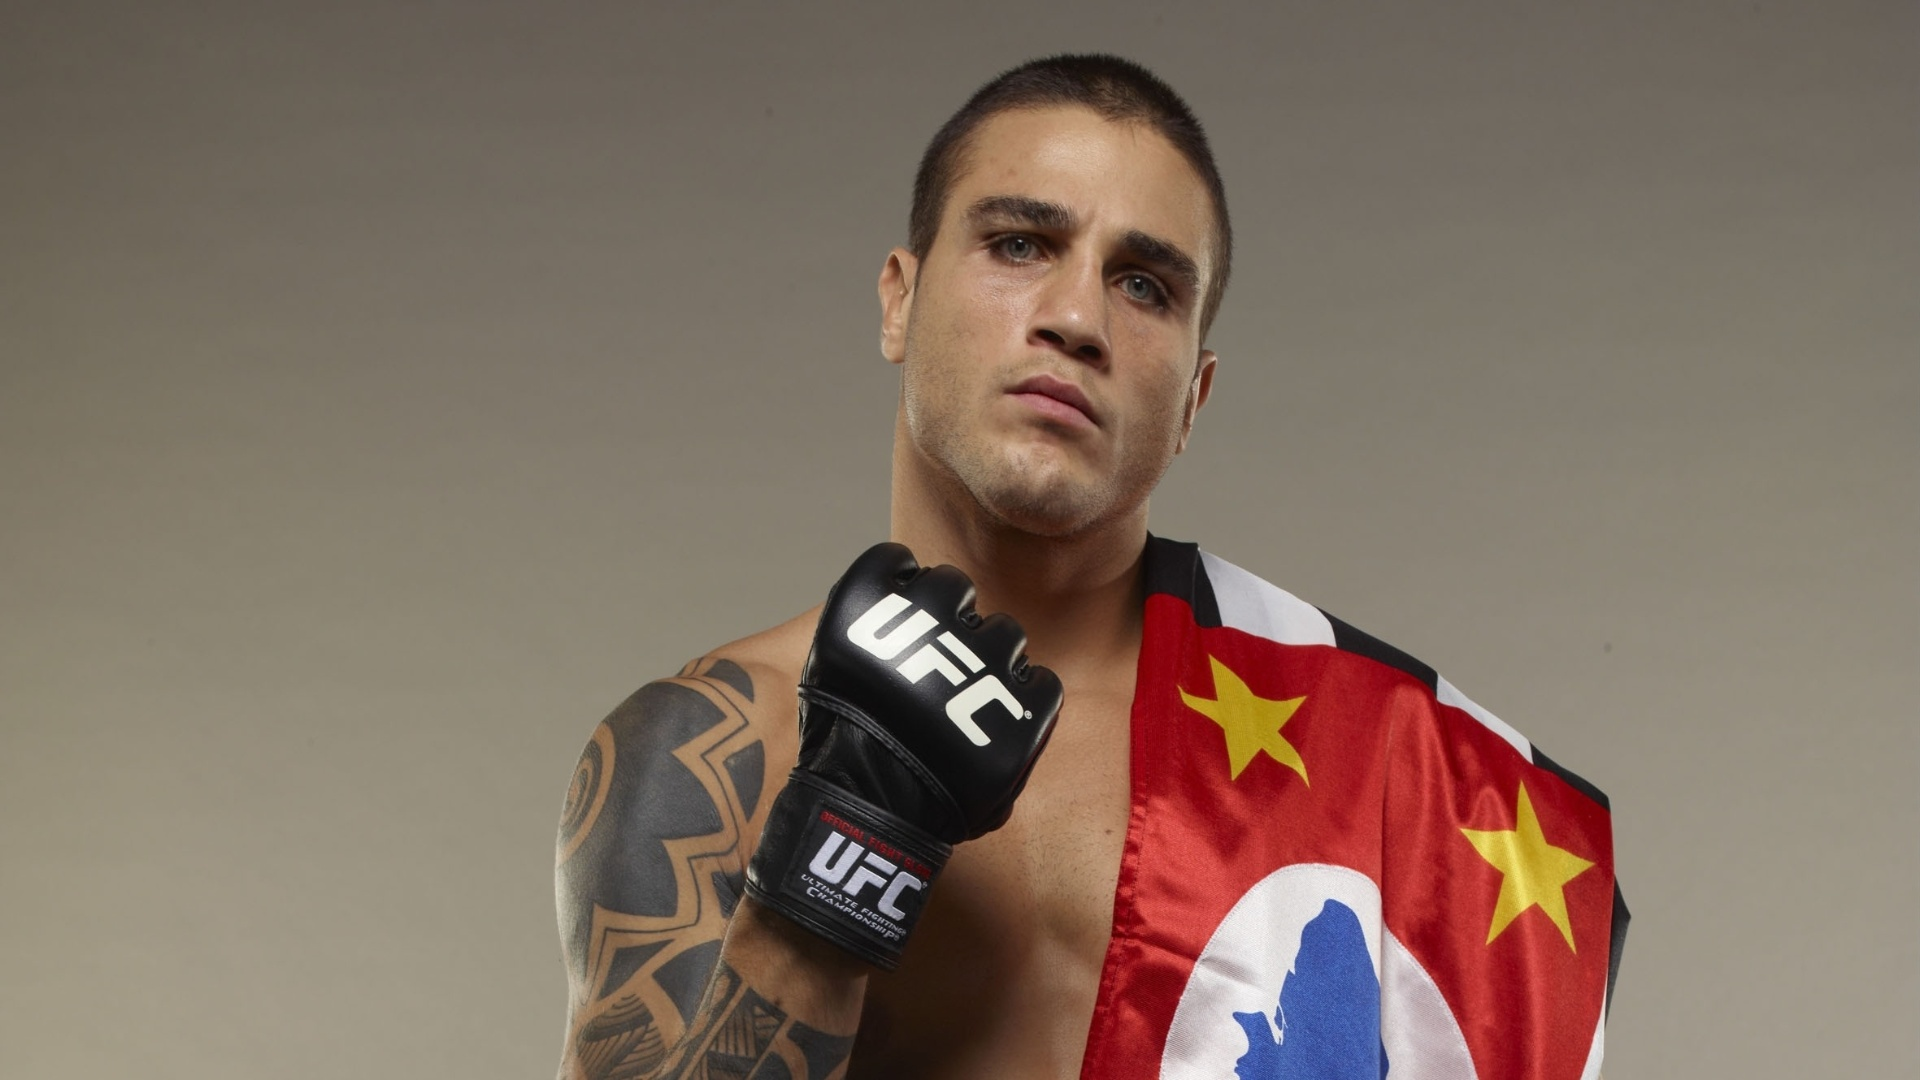 Daniel Sarafian, peso mdio do TUF Brasil